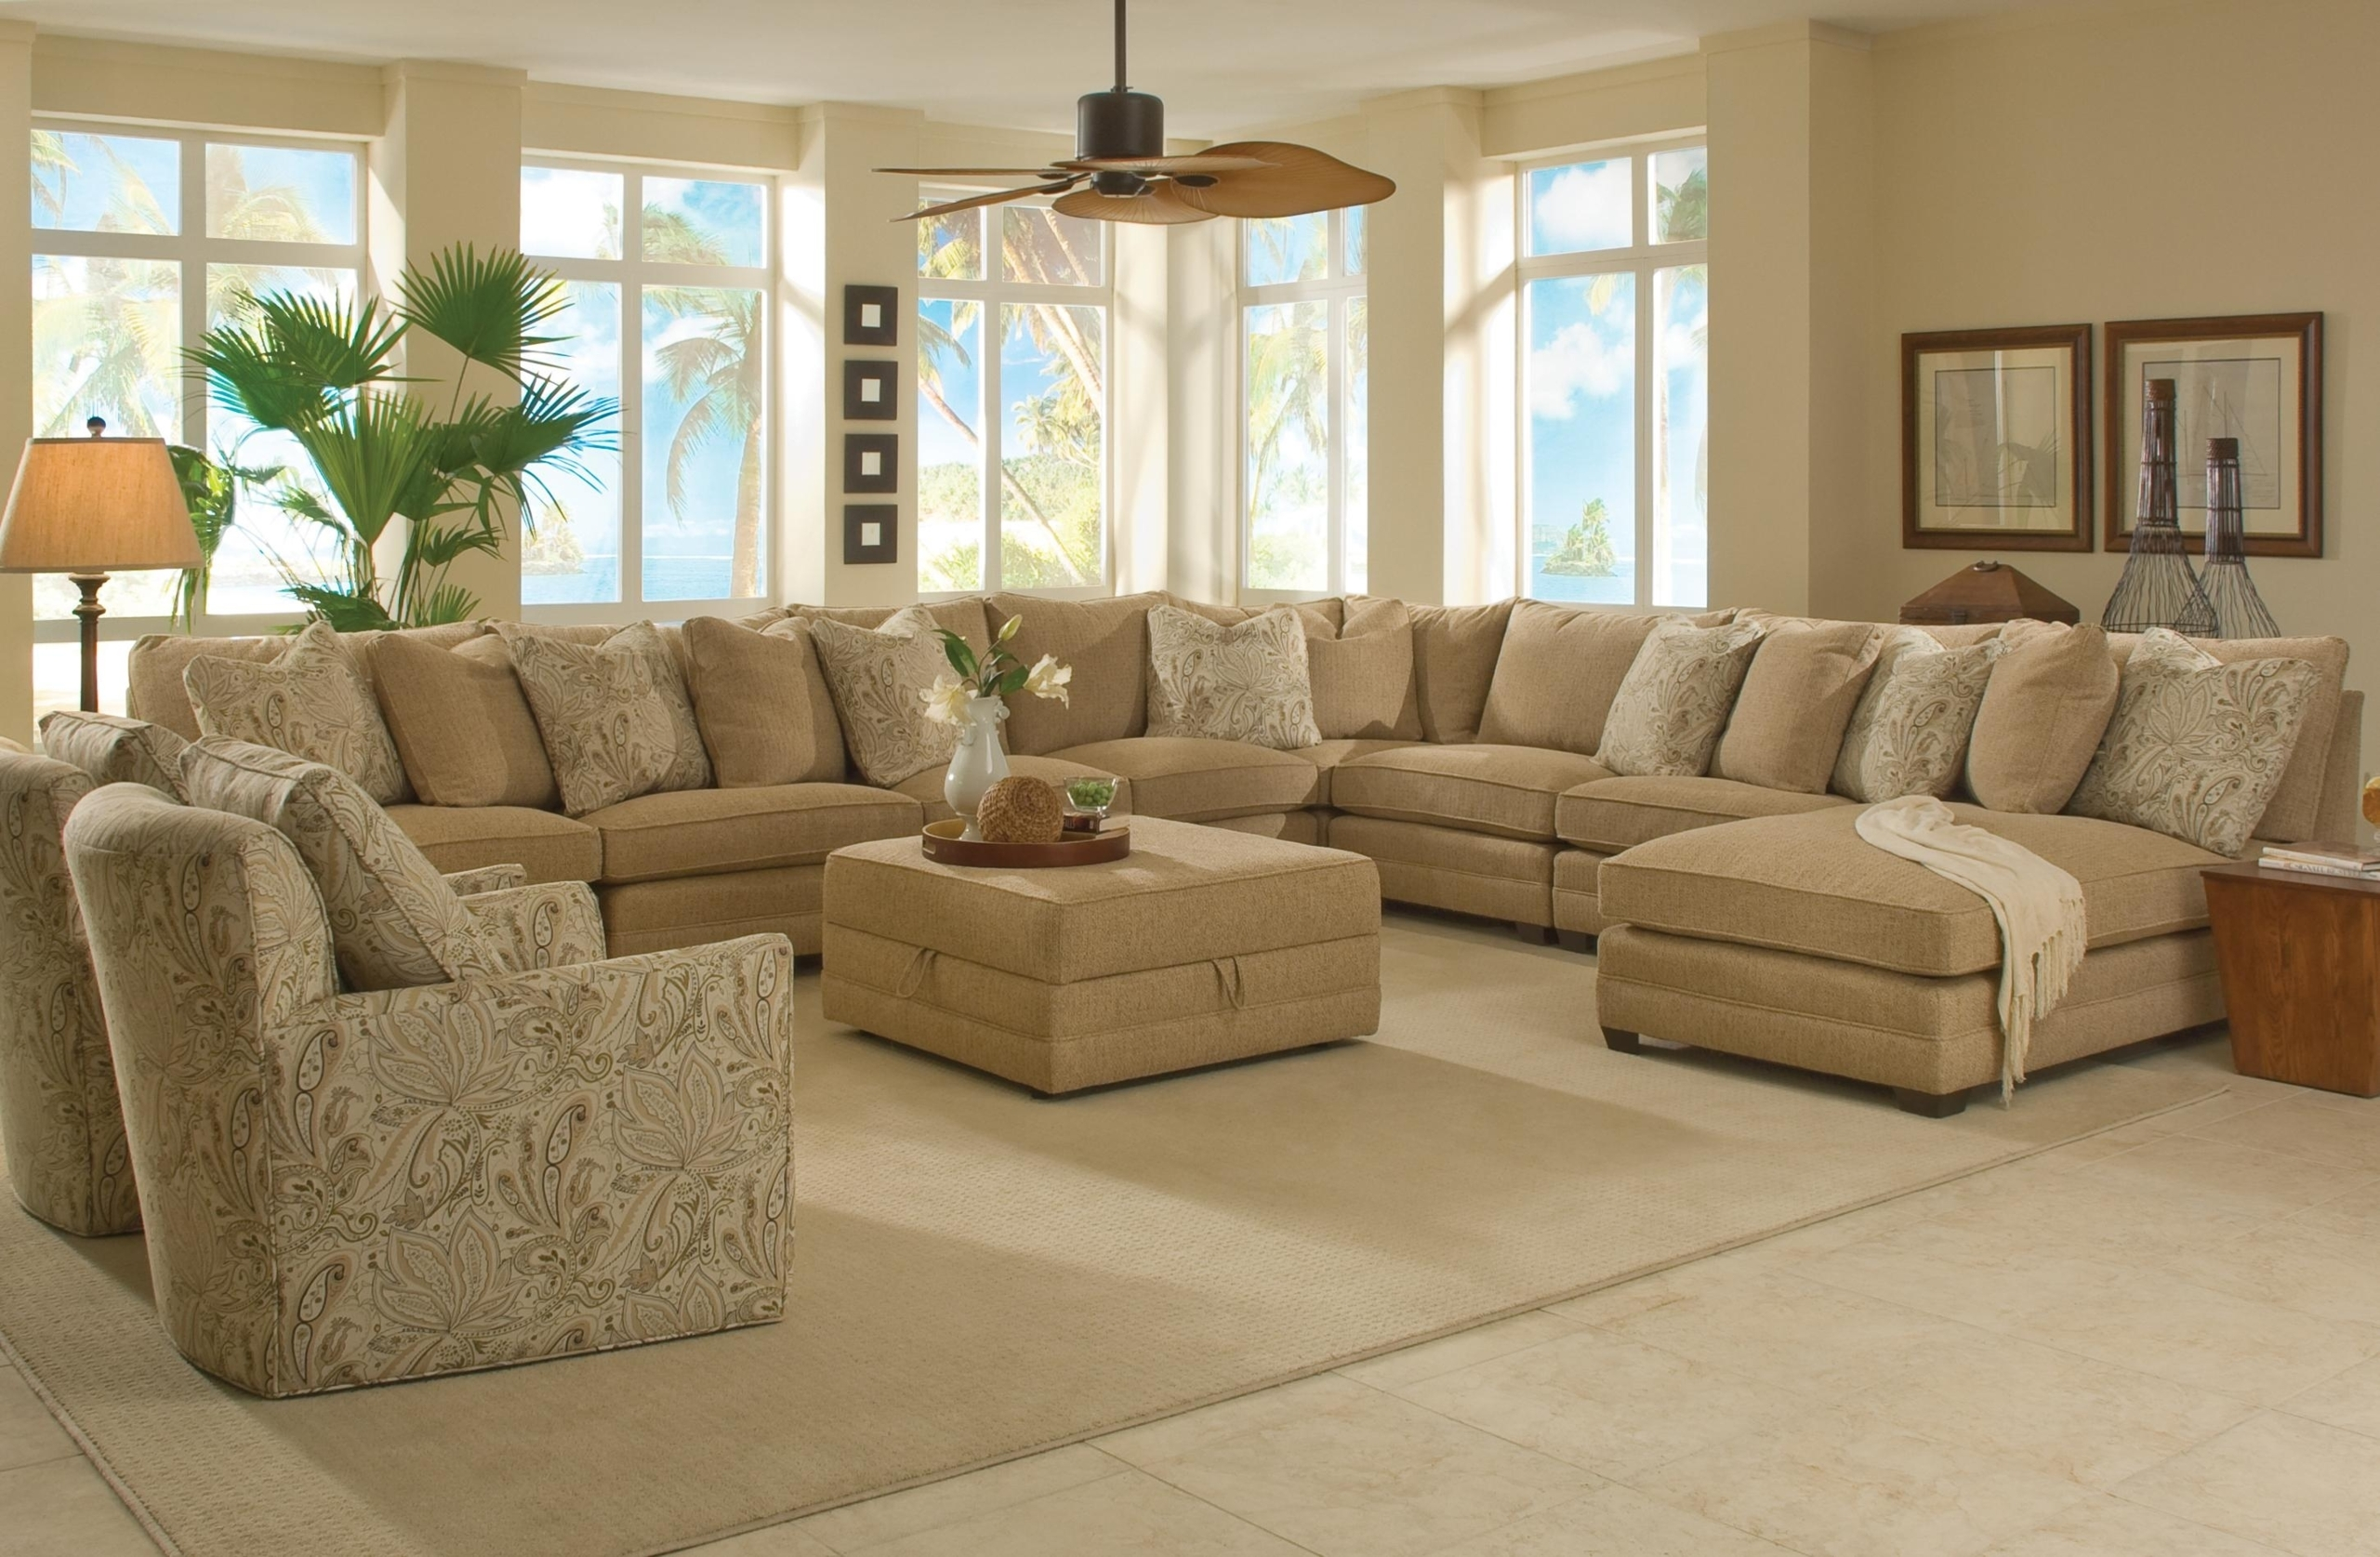 25+ Best Ideas About Large Sectional Sofa On Pinterest .